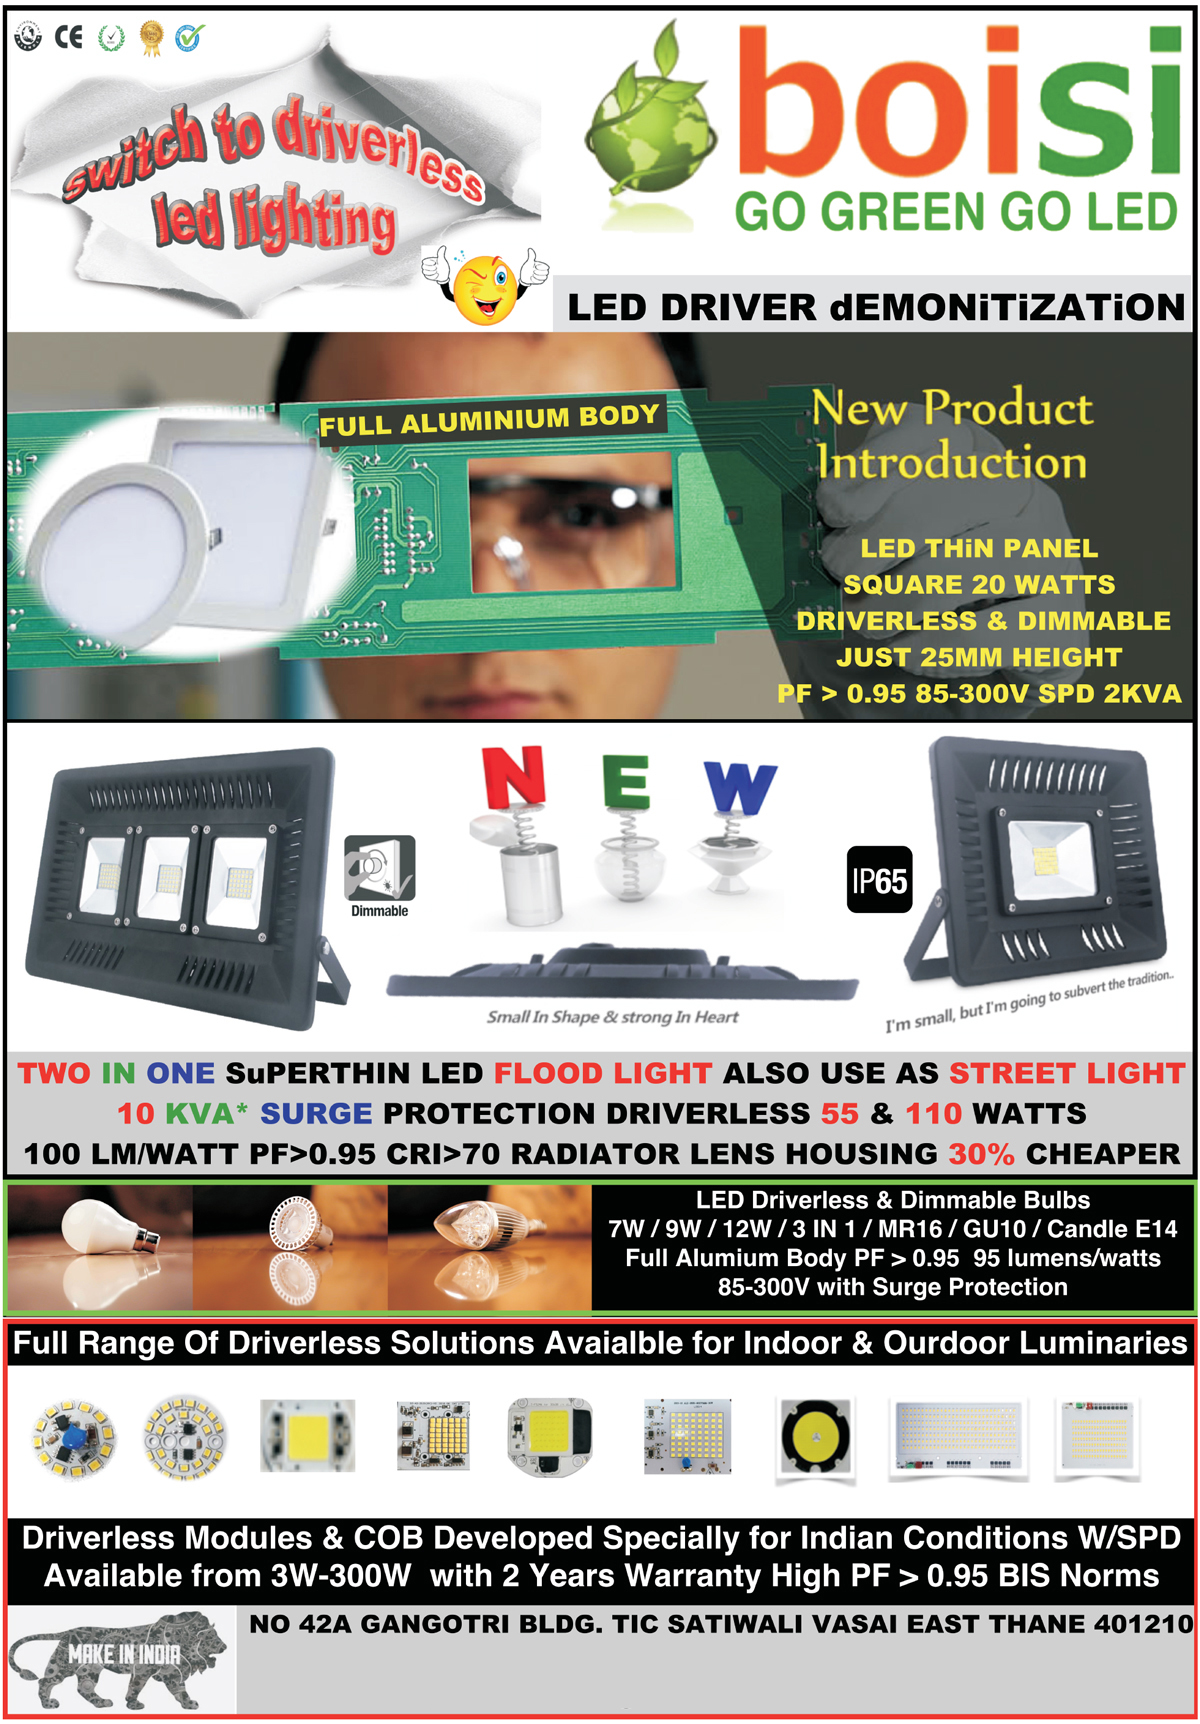 Led Lights, LED Tube Lights, Spot Light Retrofits, LED Candle Bulbs, LED Panel Lights, Waterproof LED Drivers, Non waterproof LED Drivers, LED Street Light Fixture Drivers, LED Flood Light Fixture Drivers, LED Bay Light Fixture Drivers, Strip Light RGB Touch Controllers, Dual Channel wireless LED Drivers, Pool Lights, RGB Touch Controller, LED Driver COB, Dimmable Led Bulbs, Driverless Led Bulbs, Driverless Led Tube Lights, Driverless Led Indoor Lights, Dimmable Led Indoor Lights, Dimmable Led Outdoor Lights, Driverless Led Outdoor Lights, Driverless Led Lights, Sports Led Lights, Driverless AC Flood Lights, Driverless AC High Bay Lights, Driverless AC Street Lights, Driverless AC Garden Lights, Solar Street Lights, Flood Lights, Solar Street Light Cum Flood Lights, Indoor Luminaries Driverless Solutions, Outdoor Luminaries Driverless Solutions